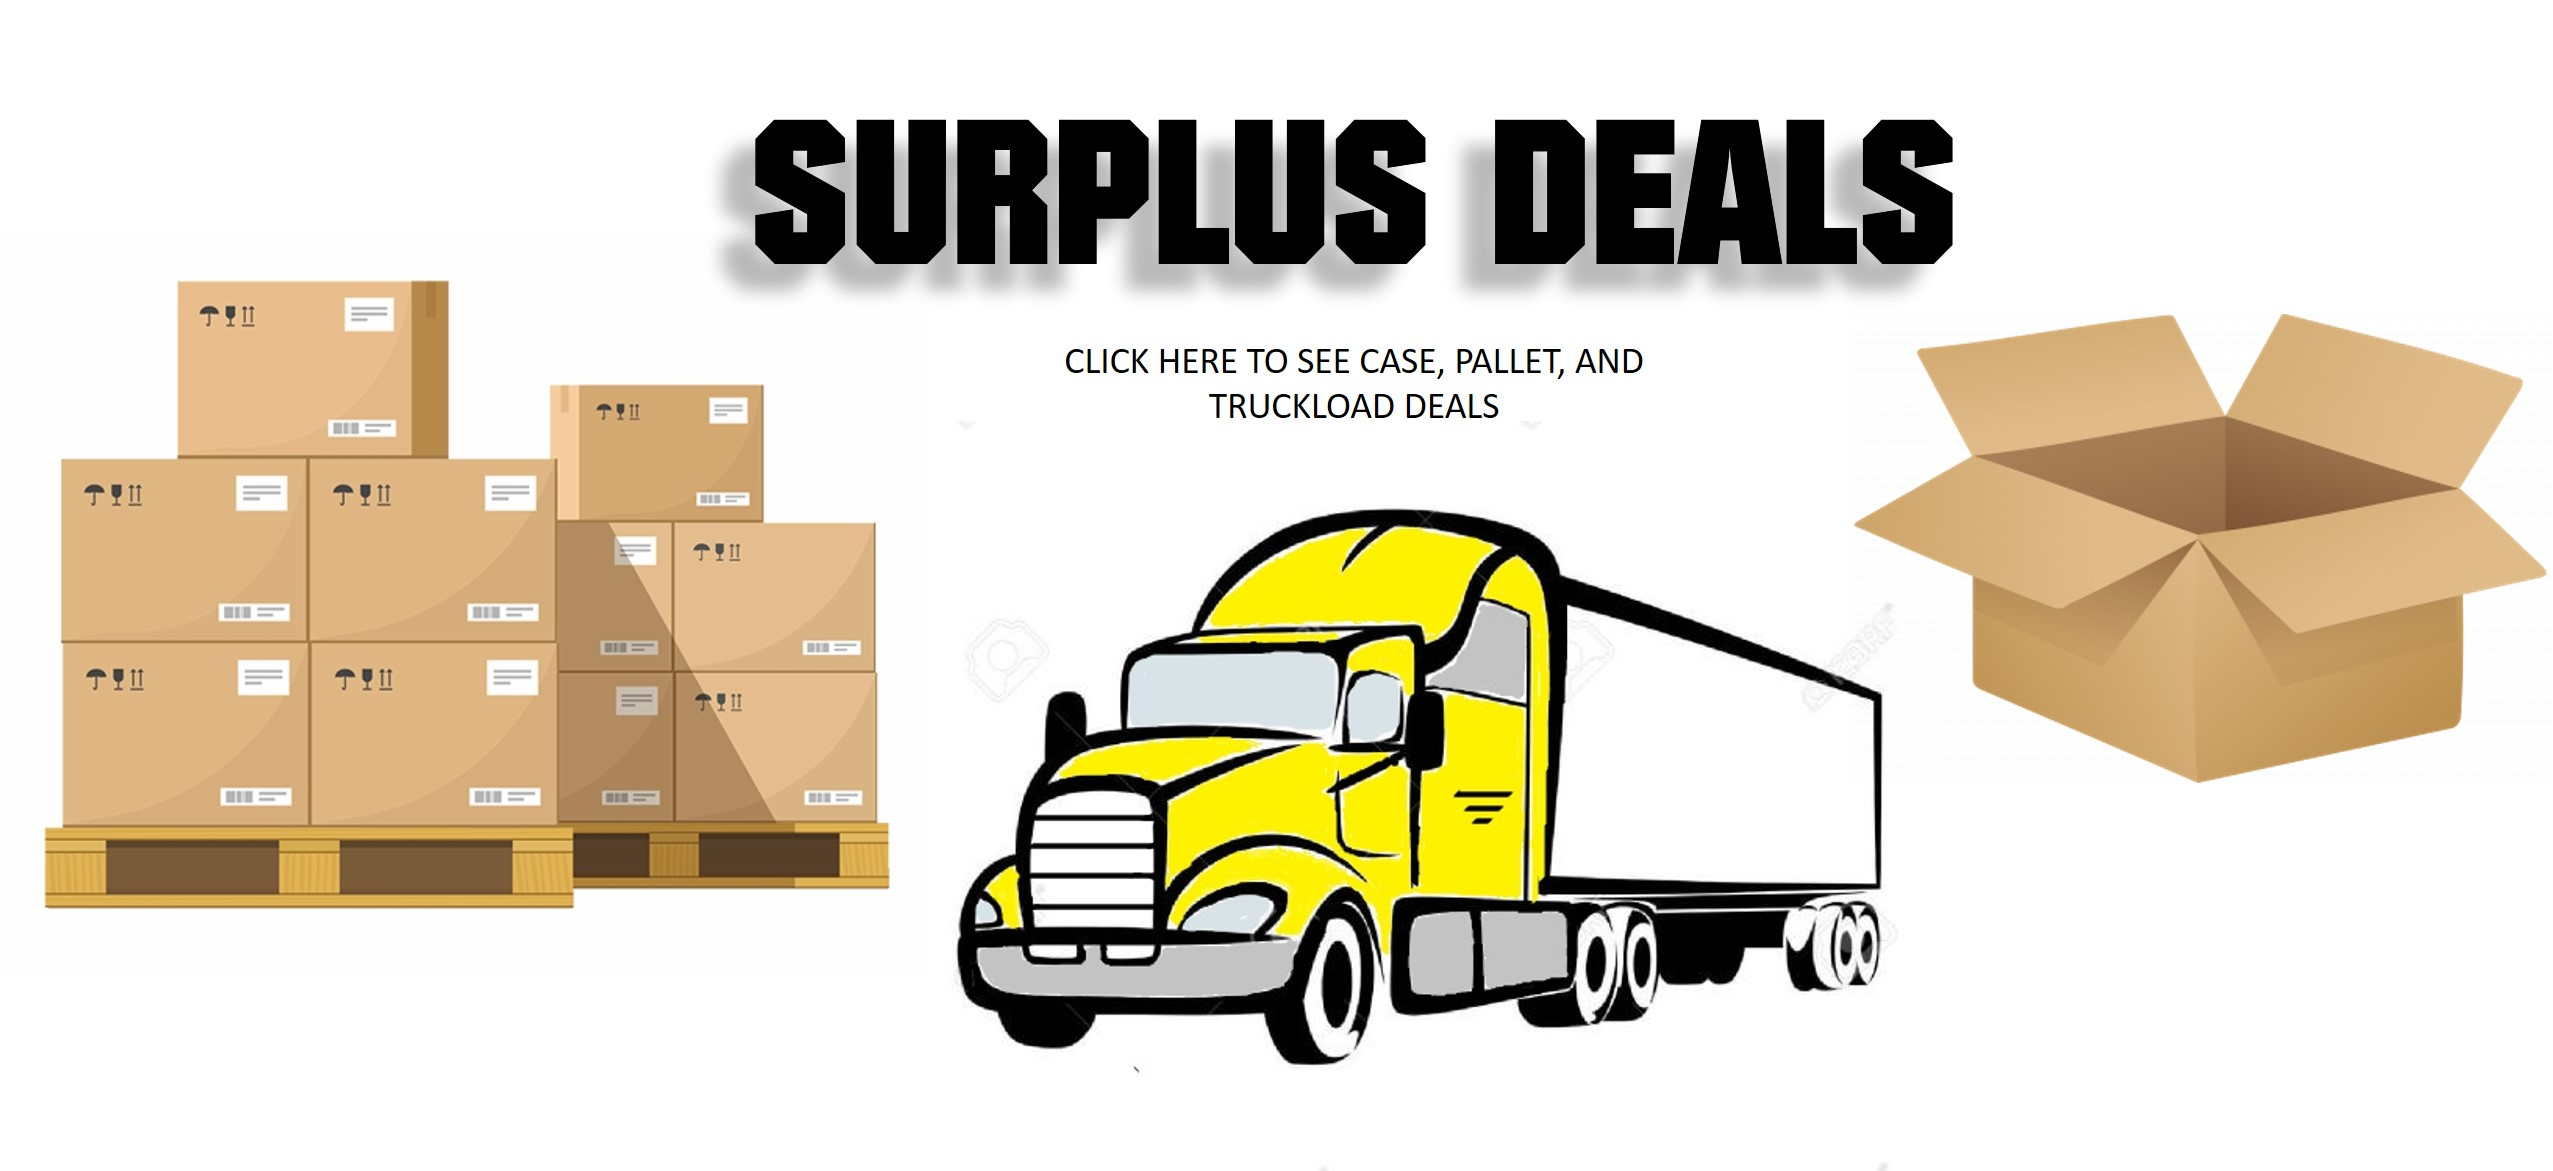 surplus-deals-header.jpg